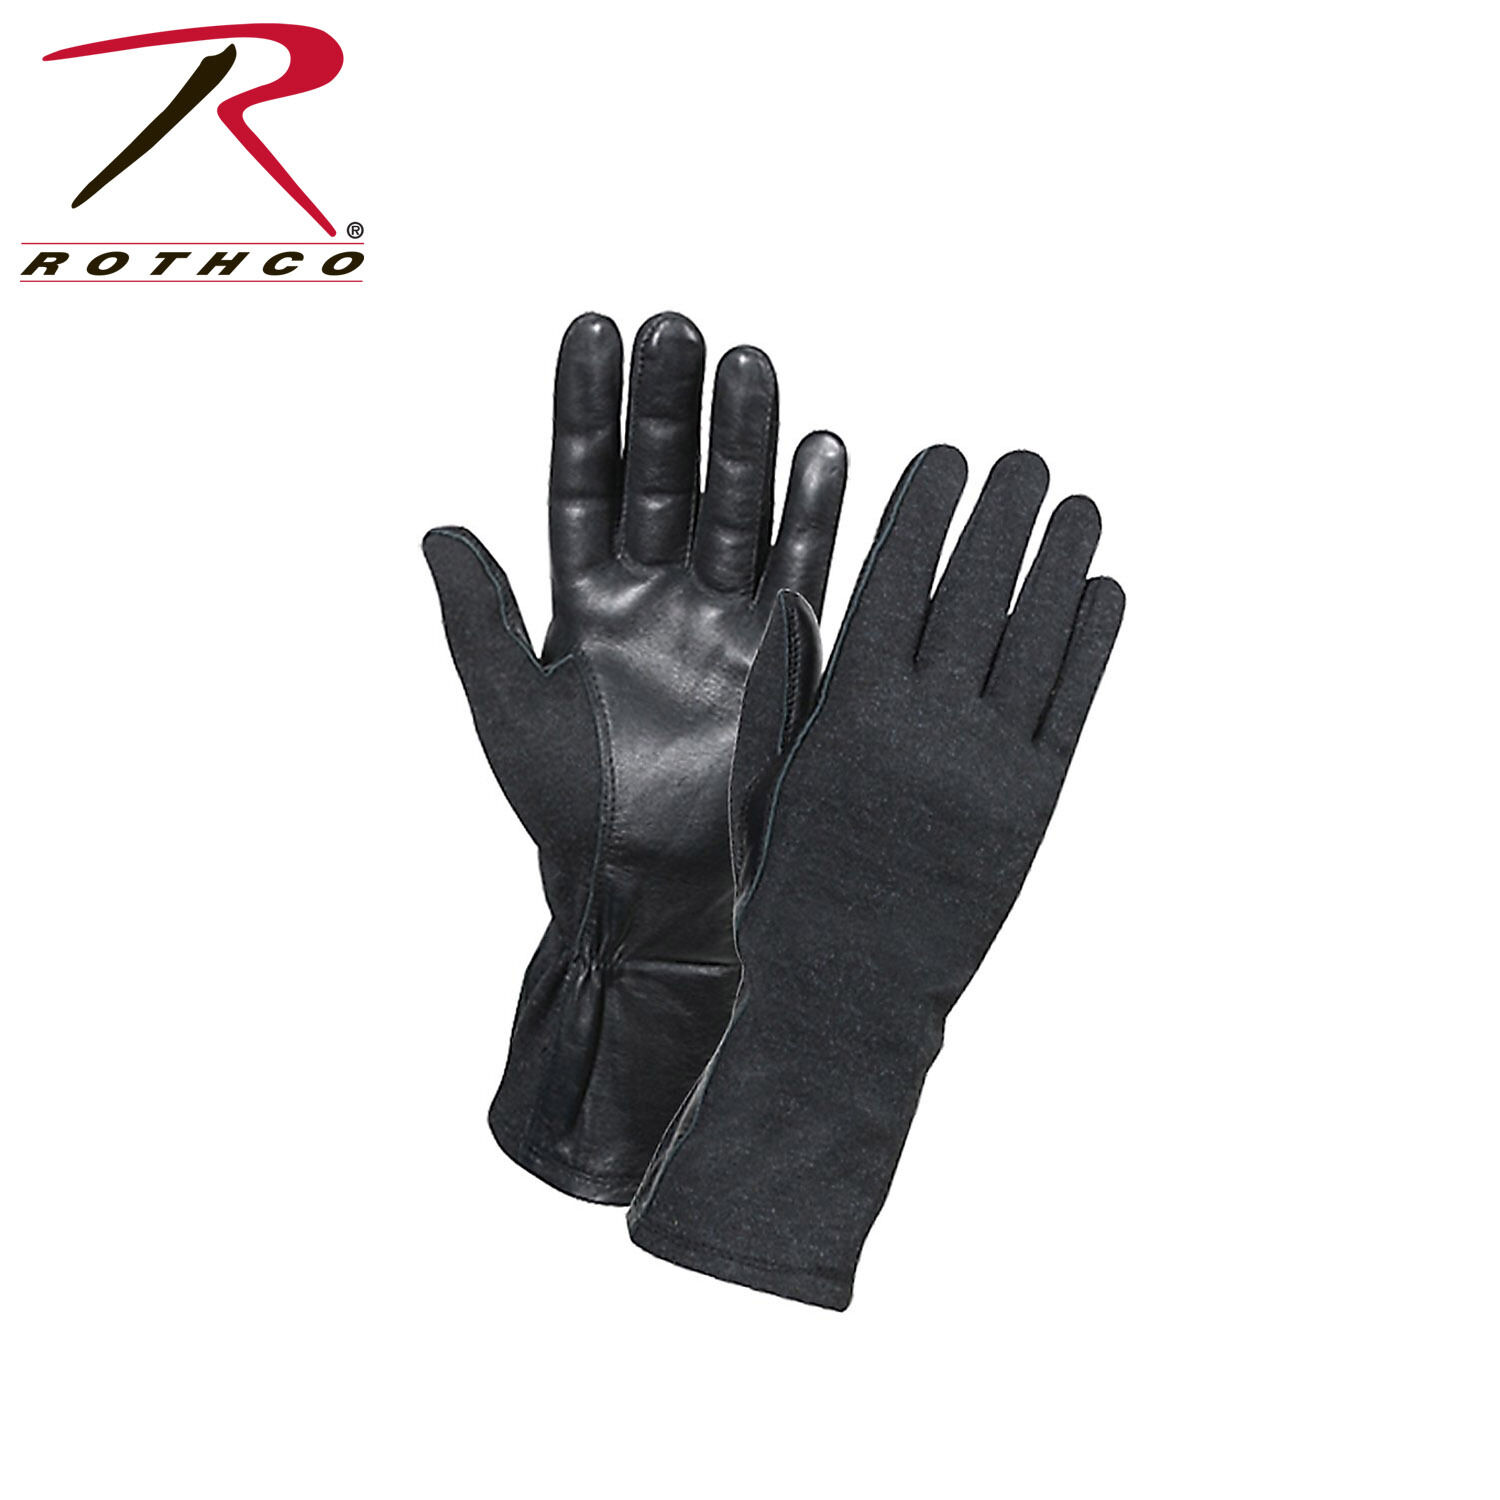 Rothco 3457 G.I. Type Flame & Heat Resistant Flight Gloves